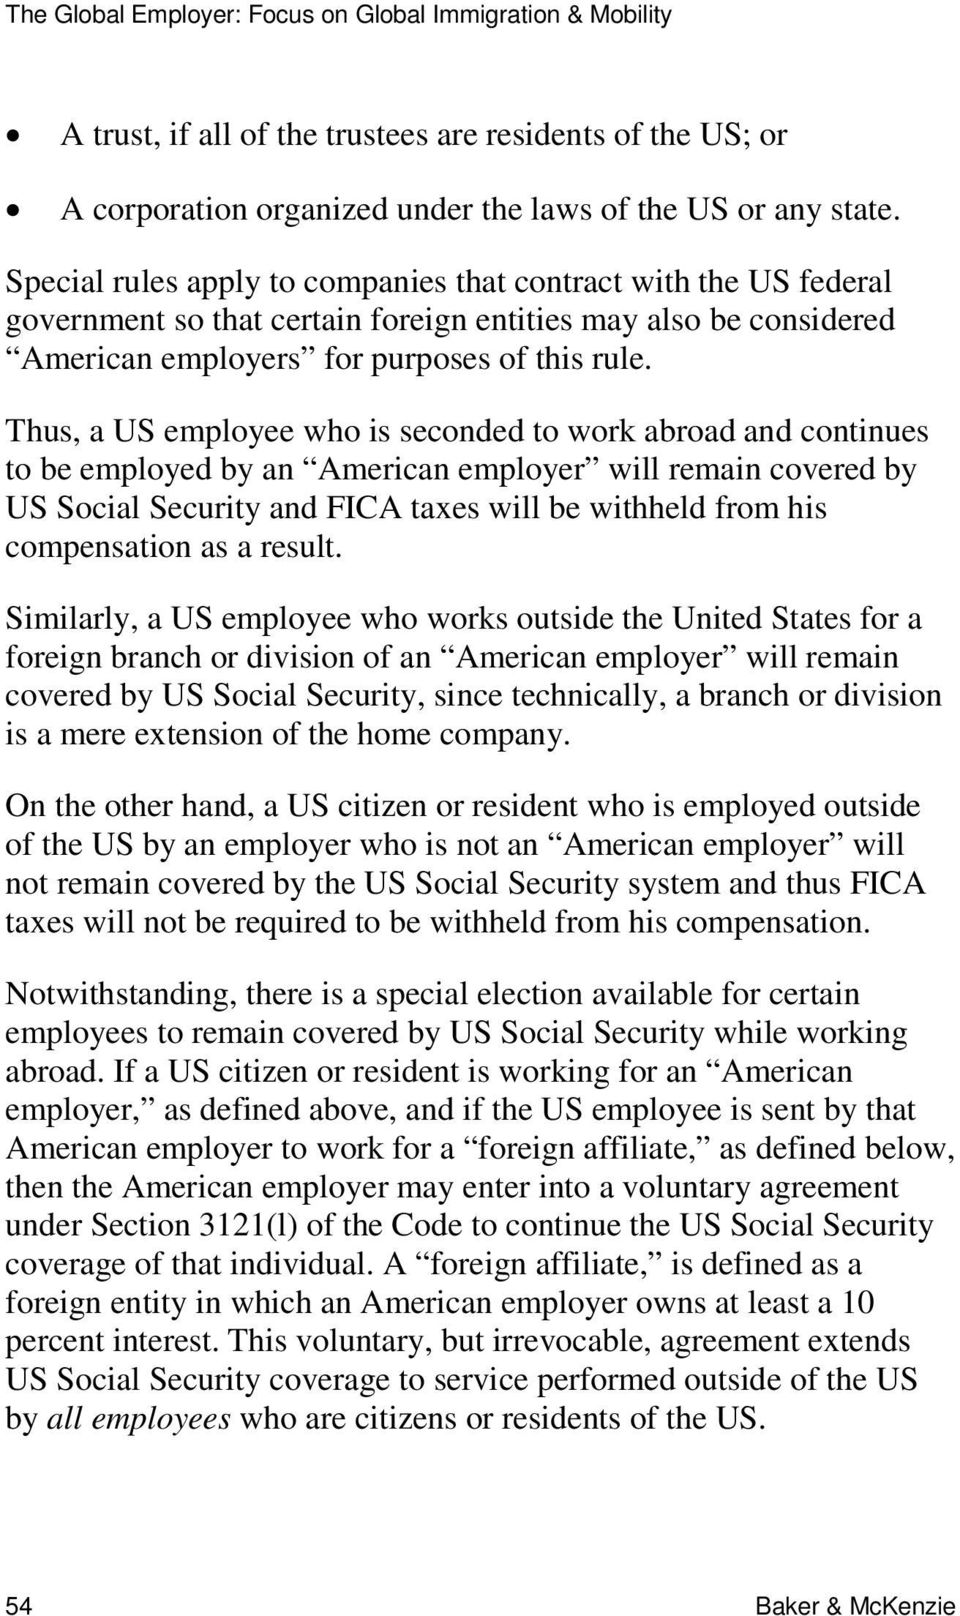 Thus, a US employee who is seconded to work abroad and continues to be employed by an American employer will remain covered by US Social Security and FICA taxes will be withheld from his compensation